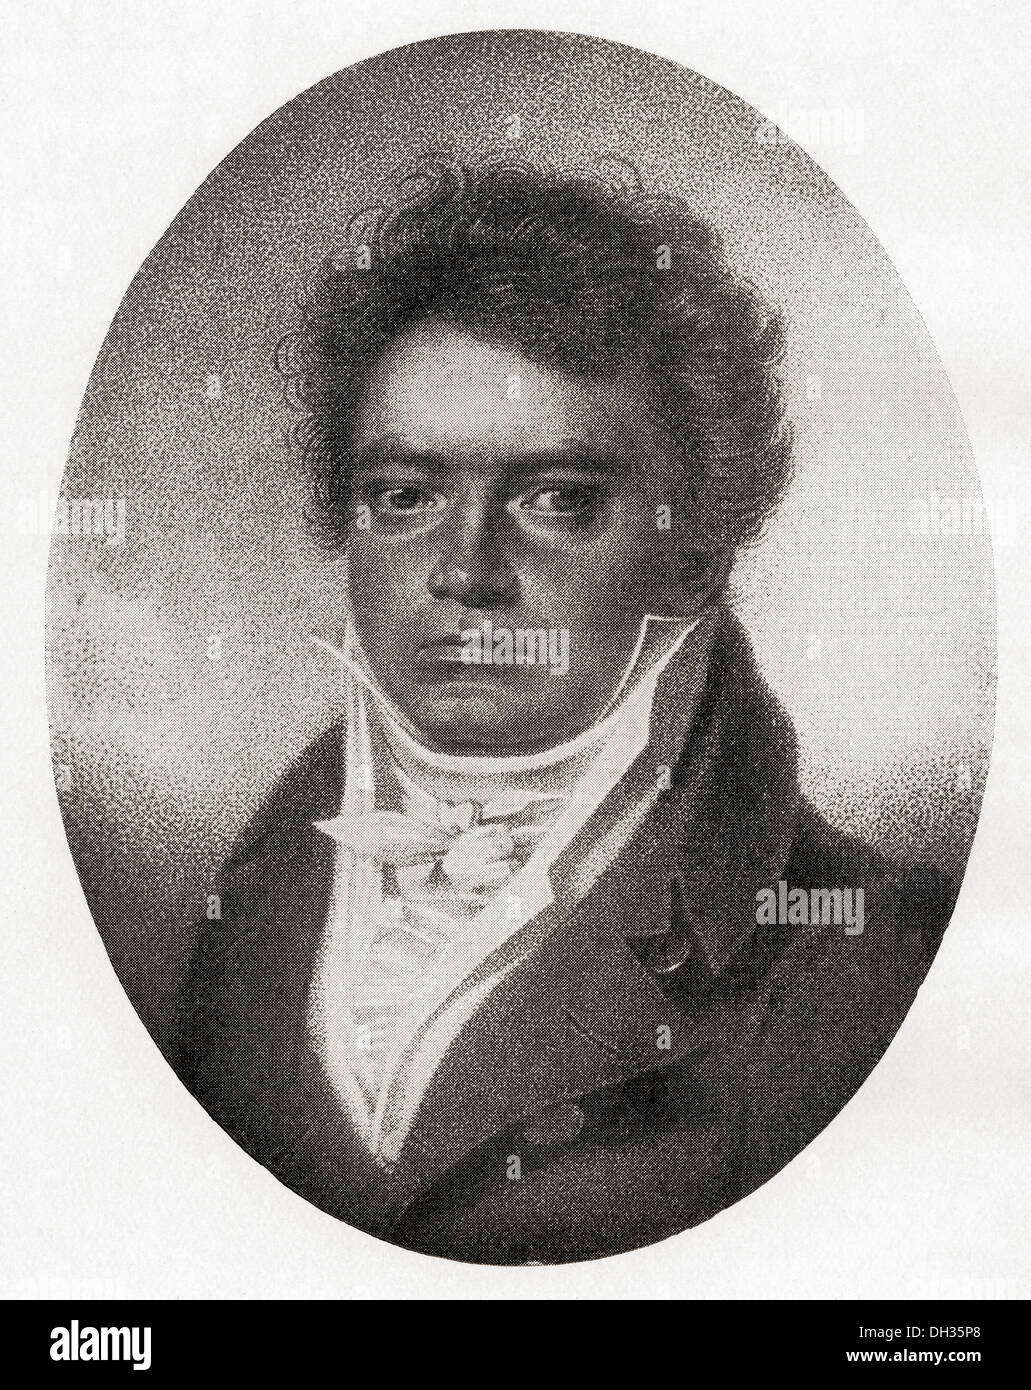 Ludwig van Beethoven, 1770 - 1827. German composer and pianist. Stock Photo